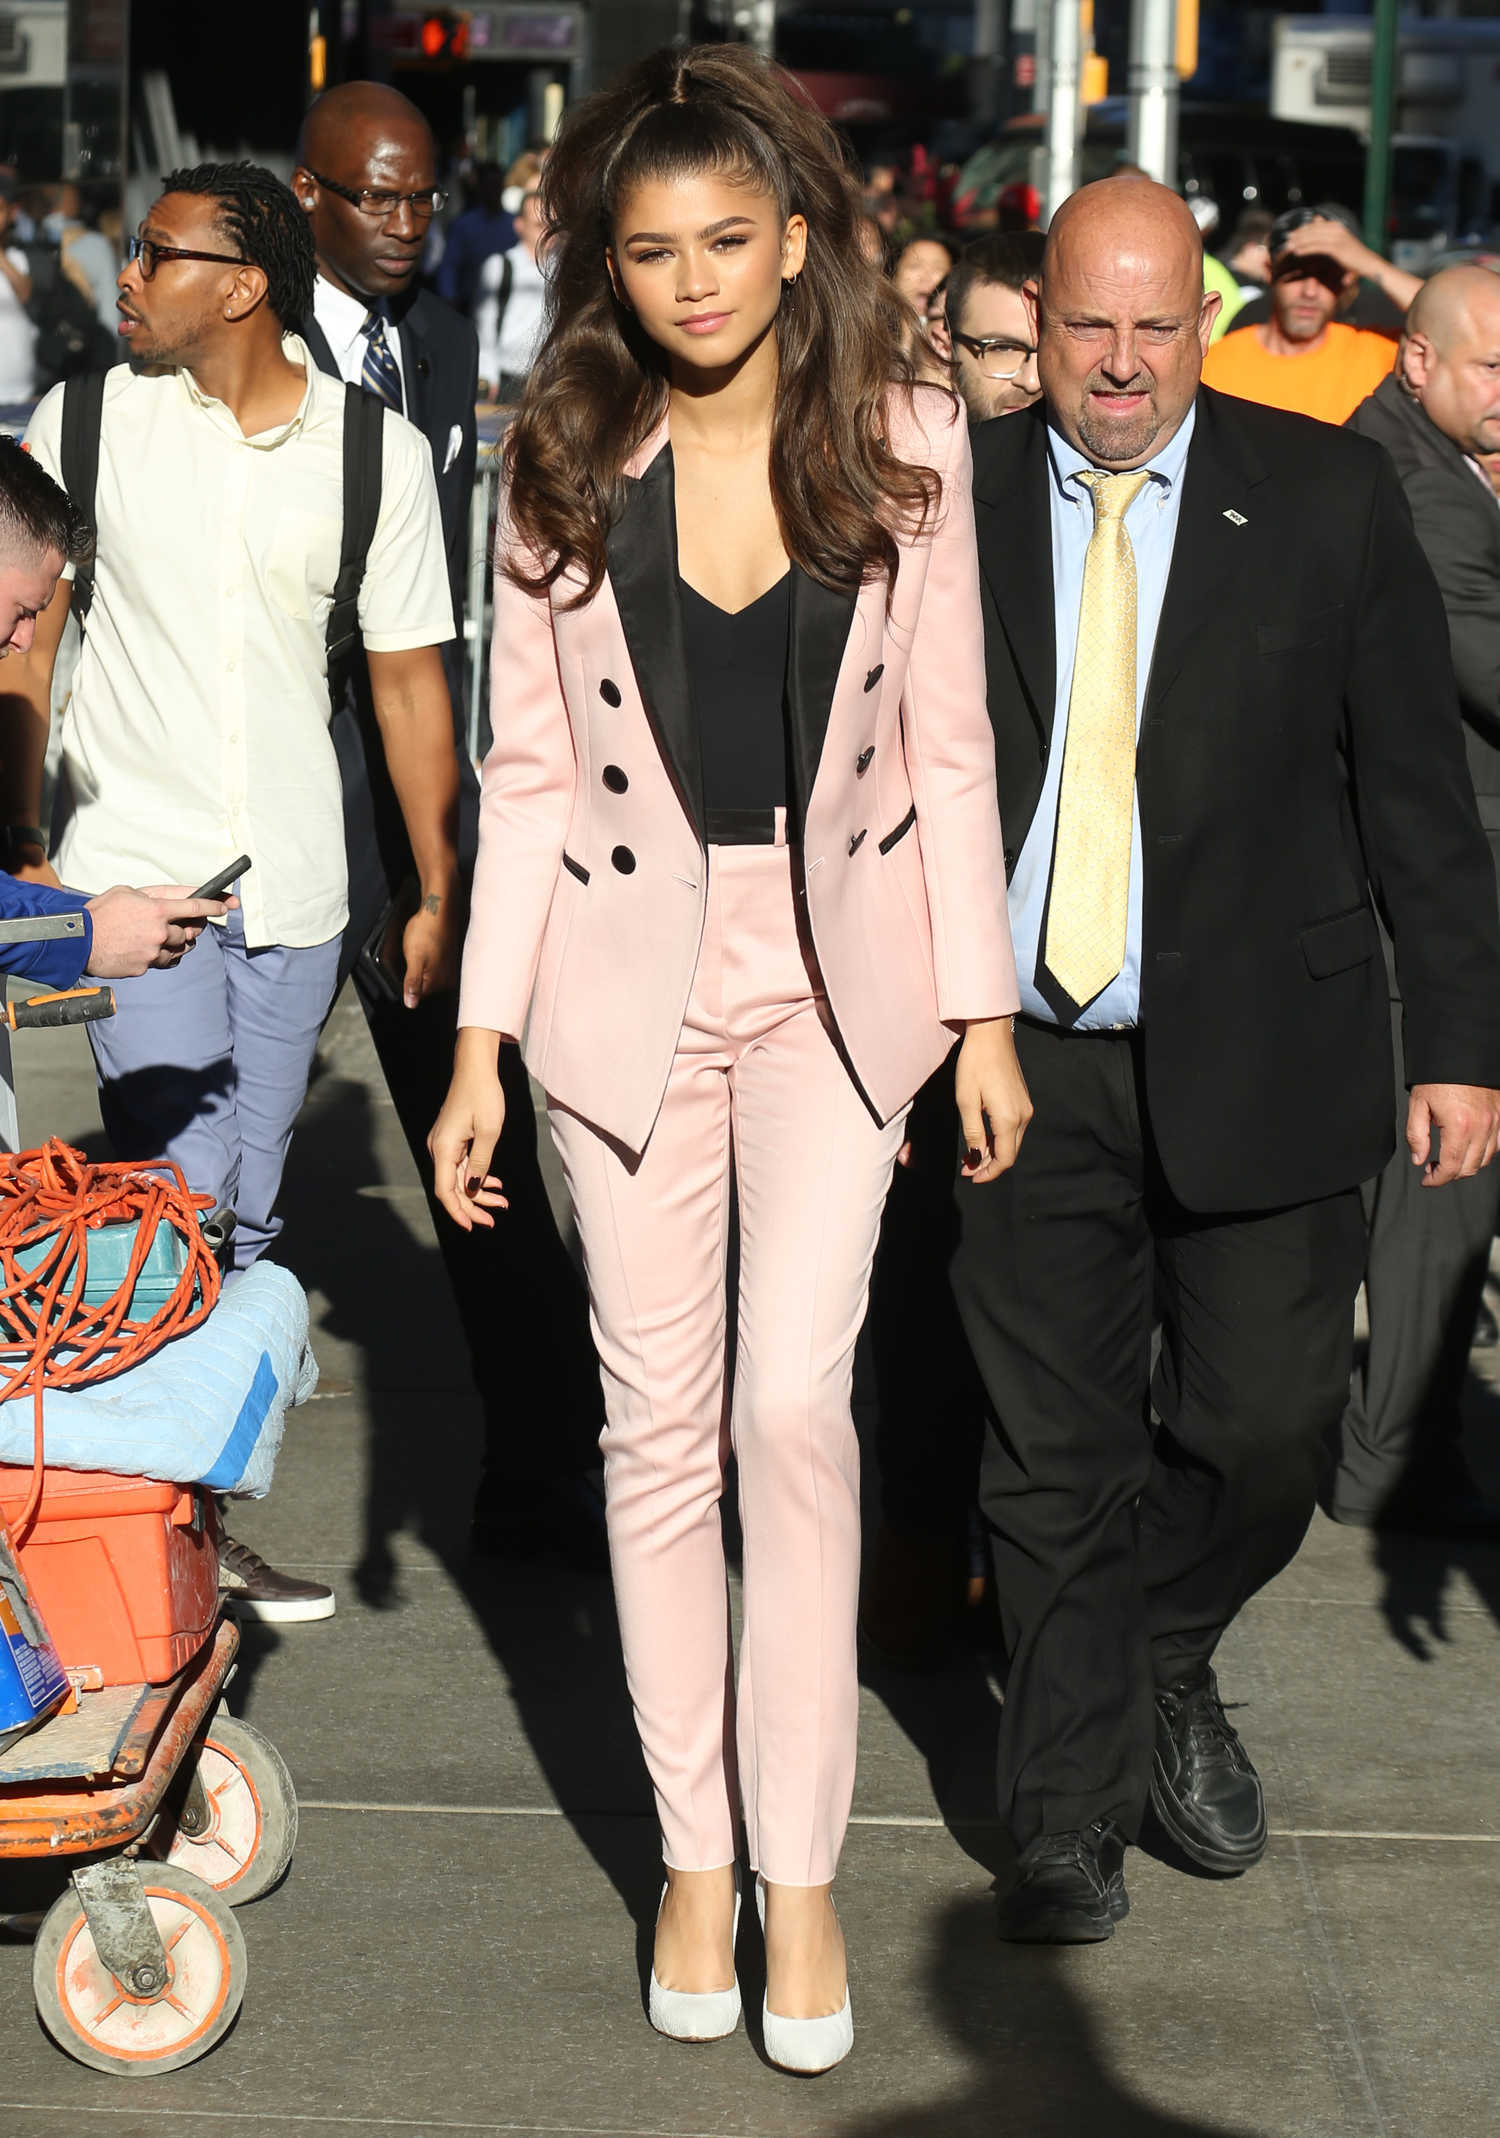 Good Morning America Nyc : Zendaya leaves good morning america in nyc celeb donut